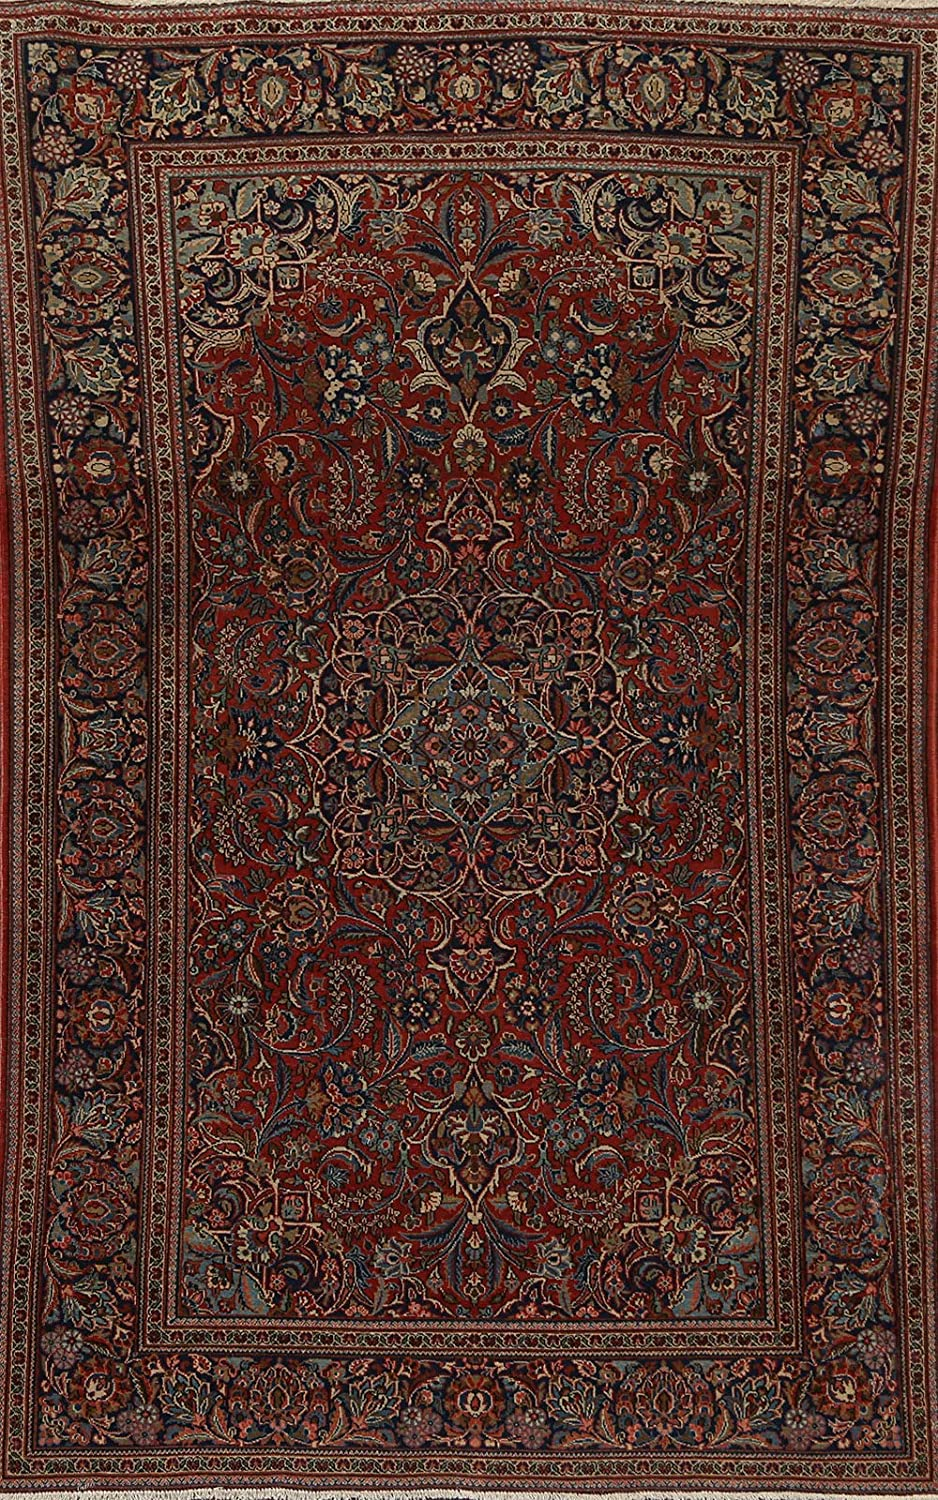 Free Shipping Cheap Bargain Gift Antique Red Floral Genuine Free Shipping Vegetable Dye Dabir Oriental Area Kashaan Rug